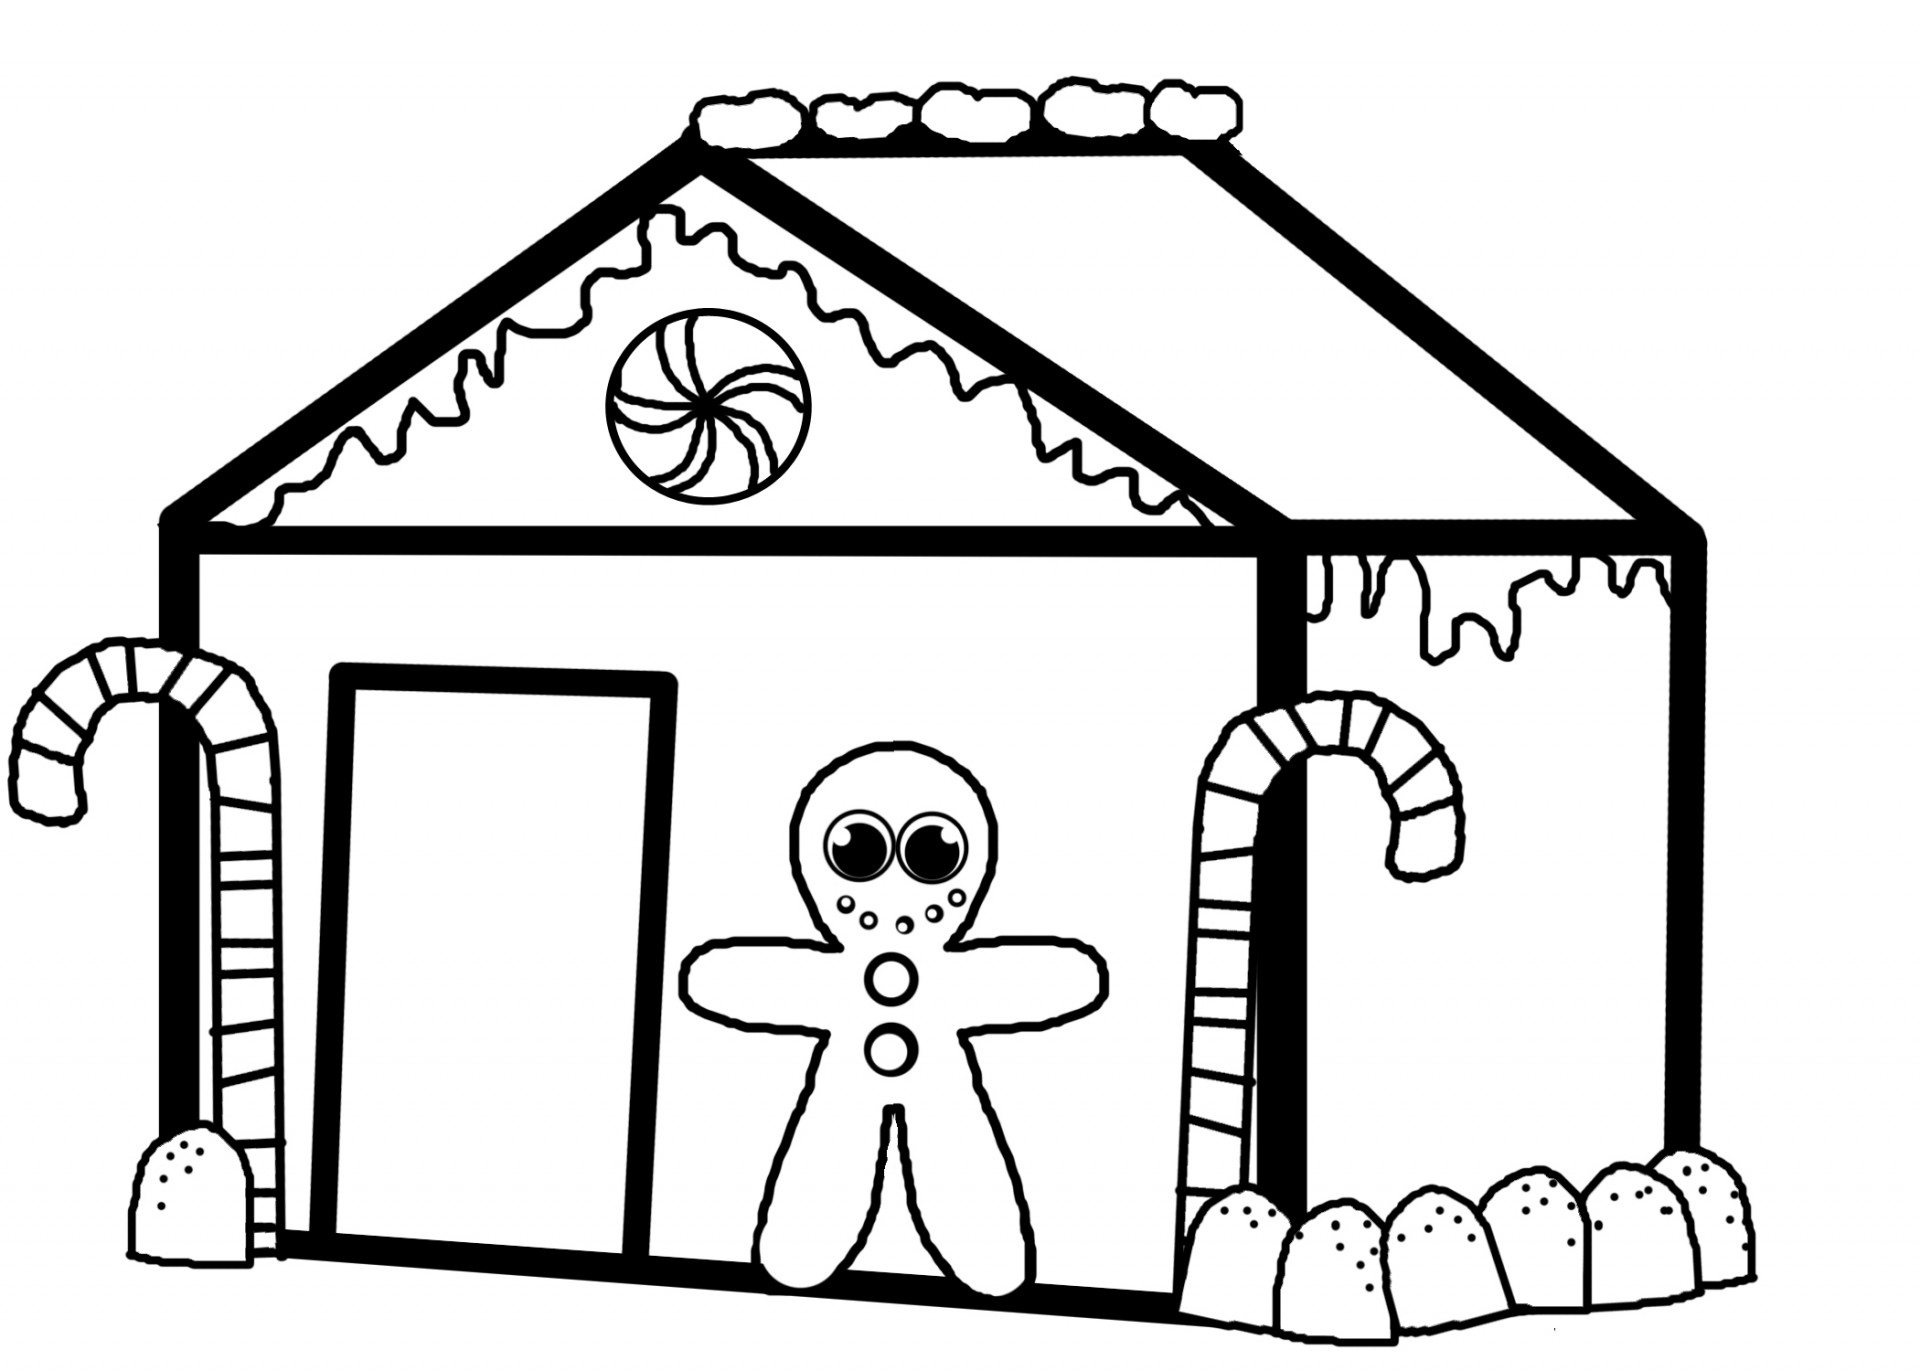 coloring picture house simple line drawing of house at getdrawings free download coloring picture house